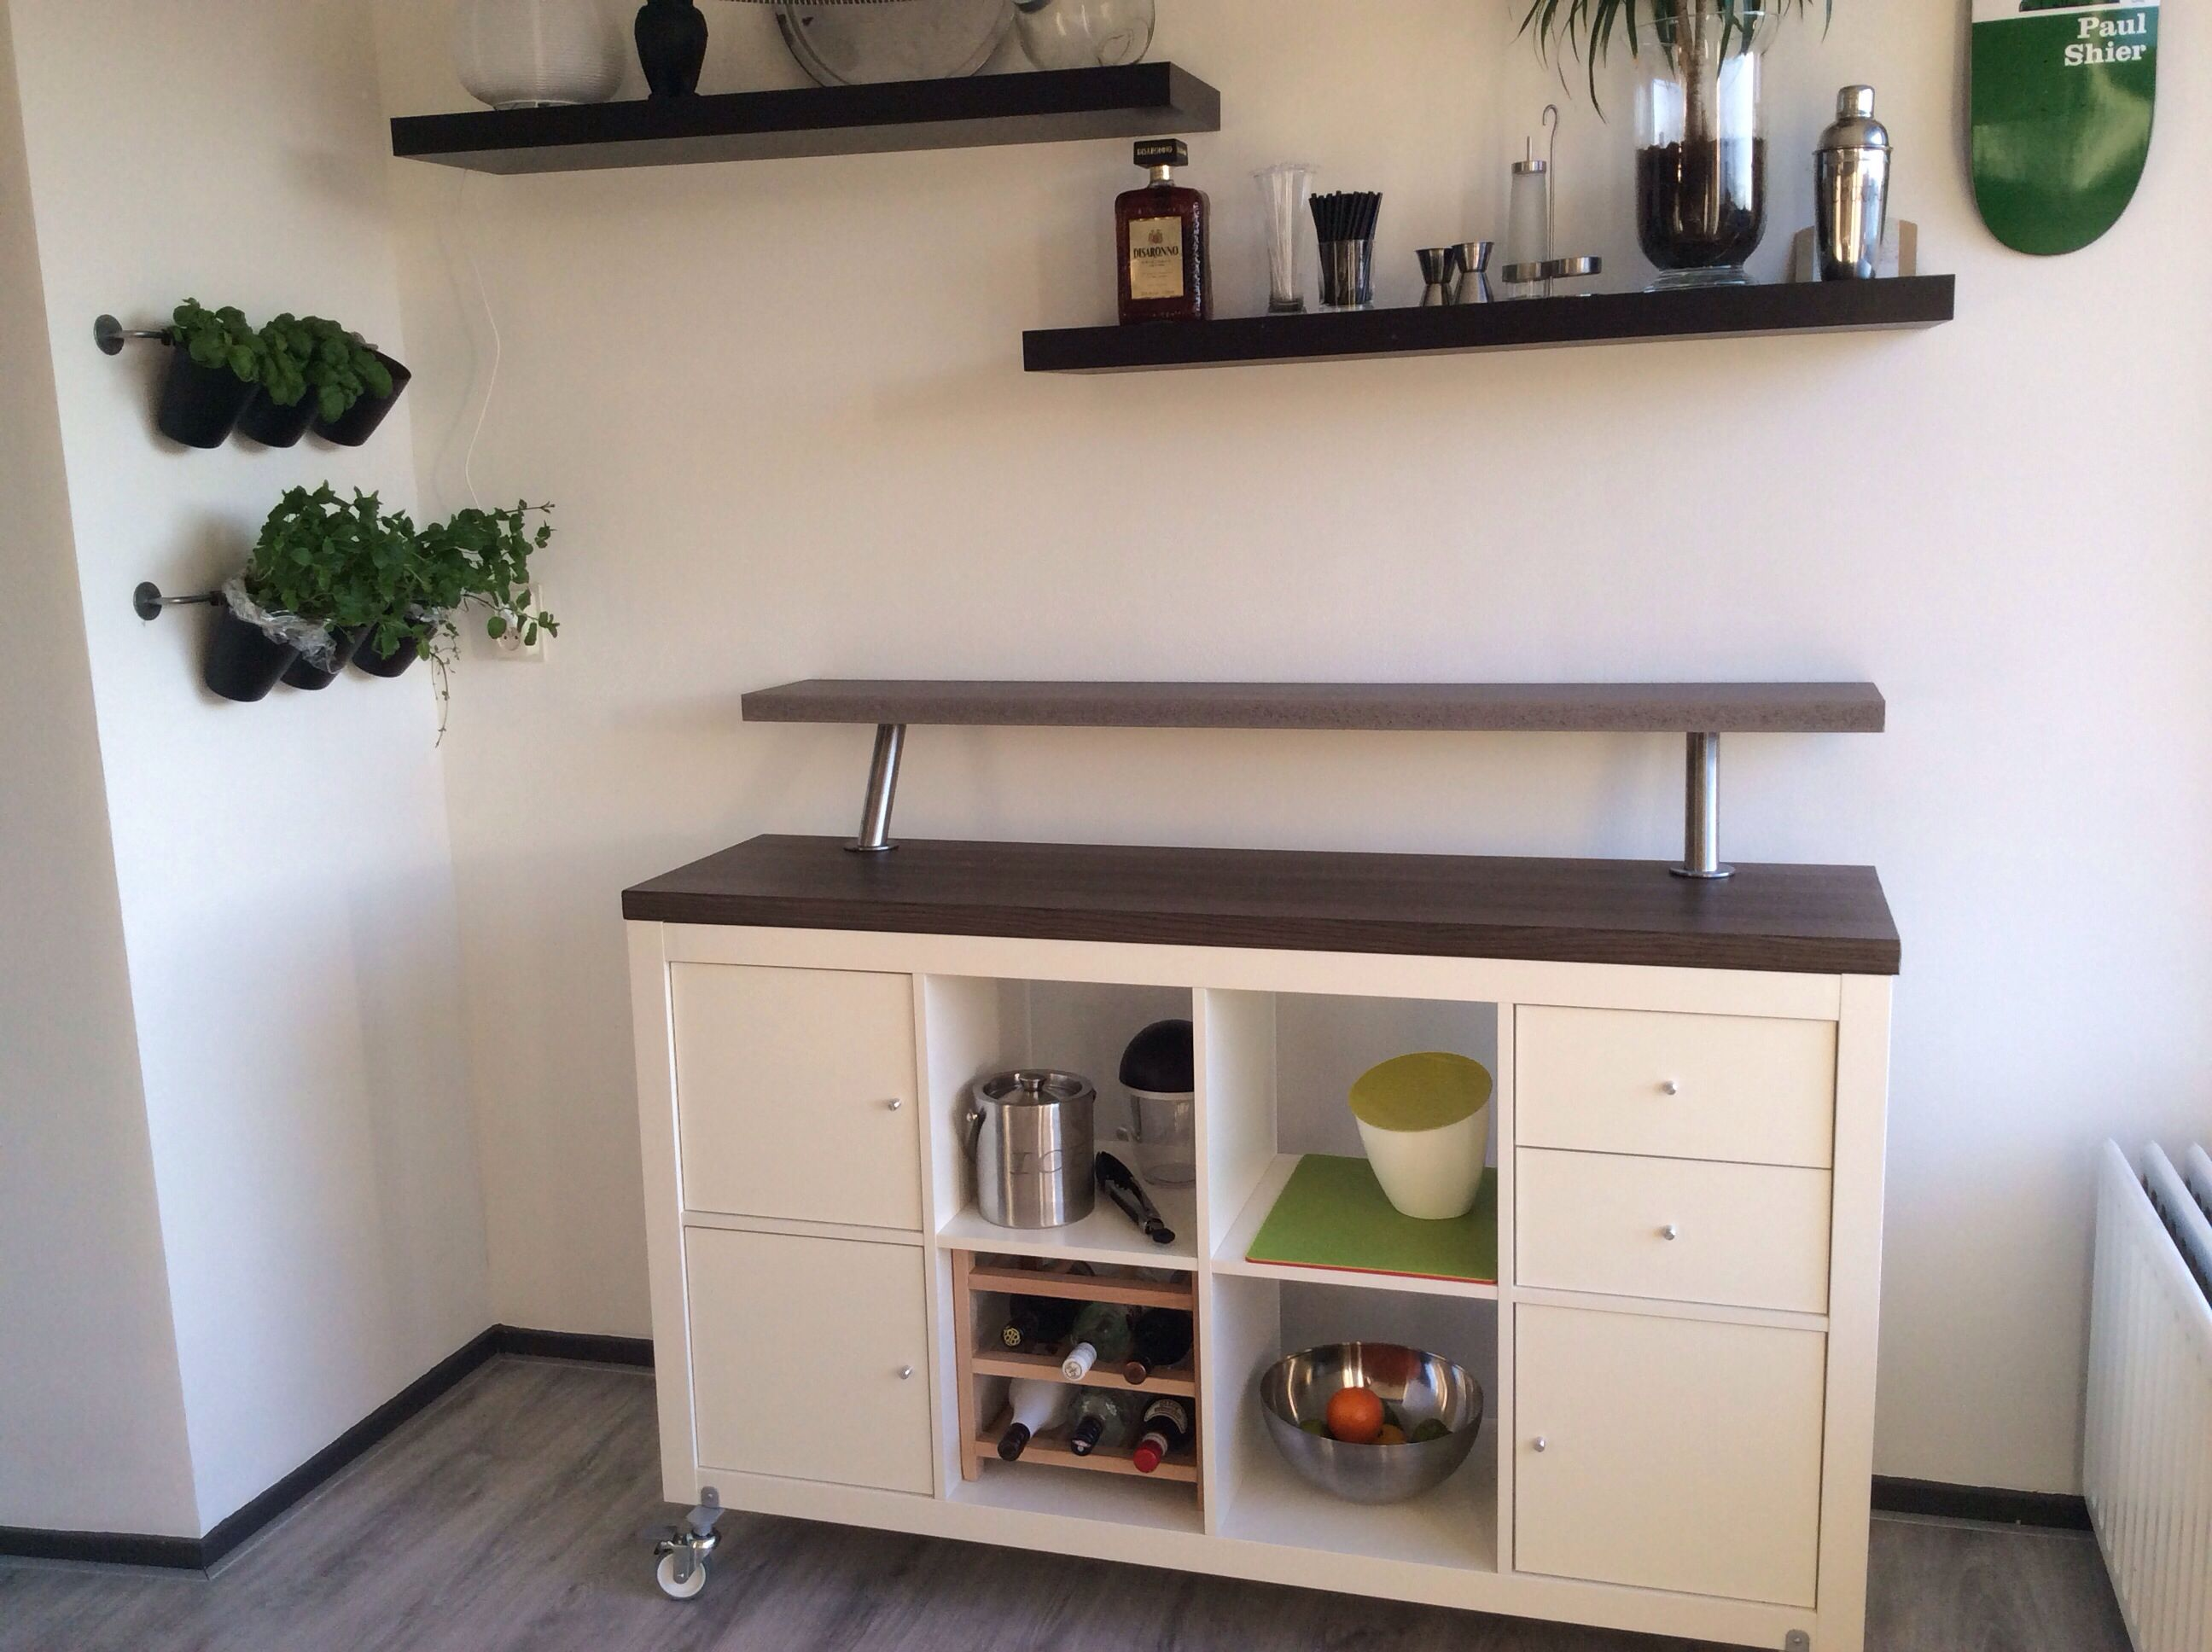 Wohnzimmer Bar Ikea Home Bar Inspired By Ikea Expedit Series Diy Love This I Need